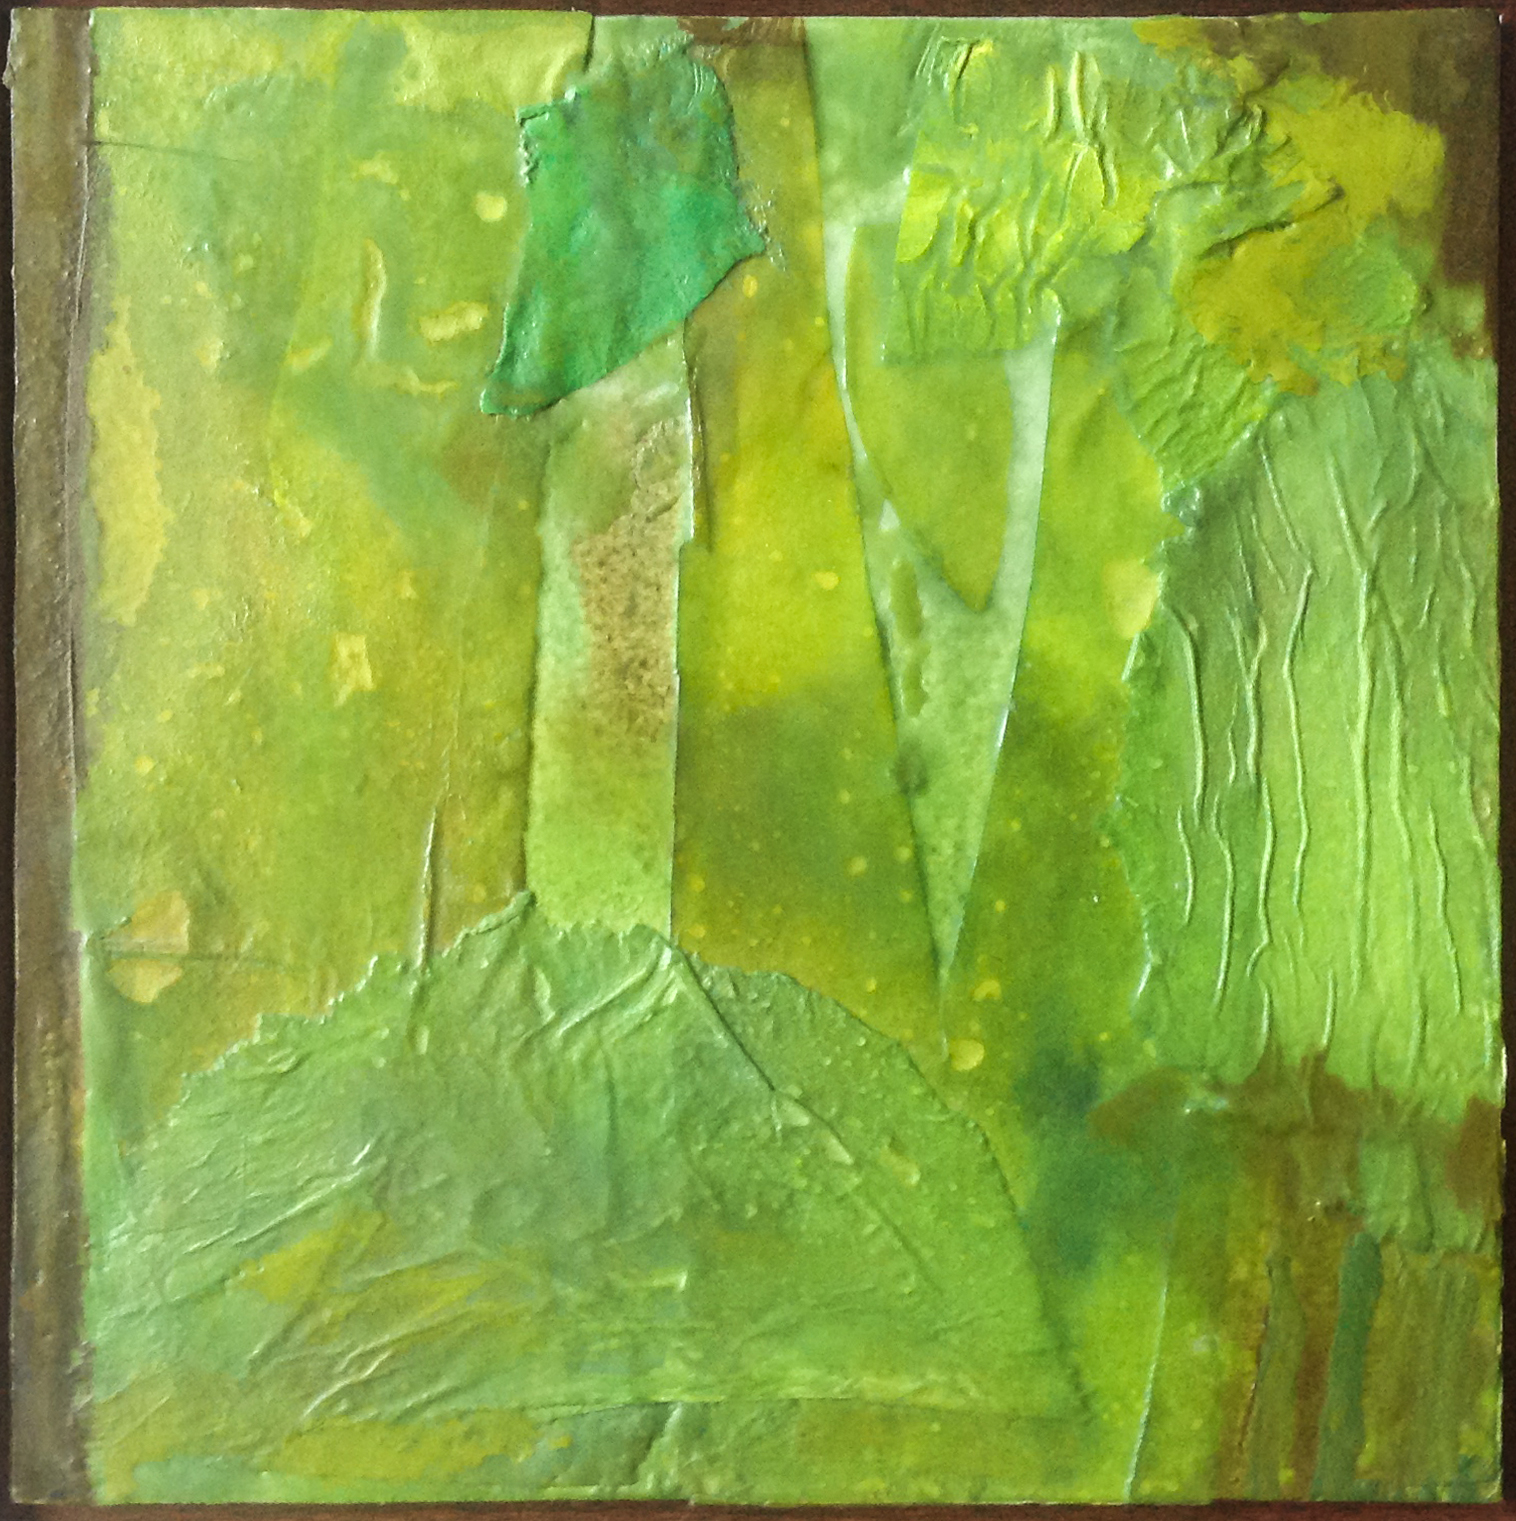 """Untitled Green - 2010 - Encaustic - 10"""" x 10"""" - Collection of Bill Reybold"""